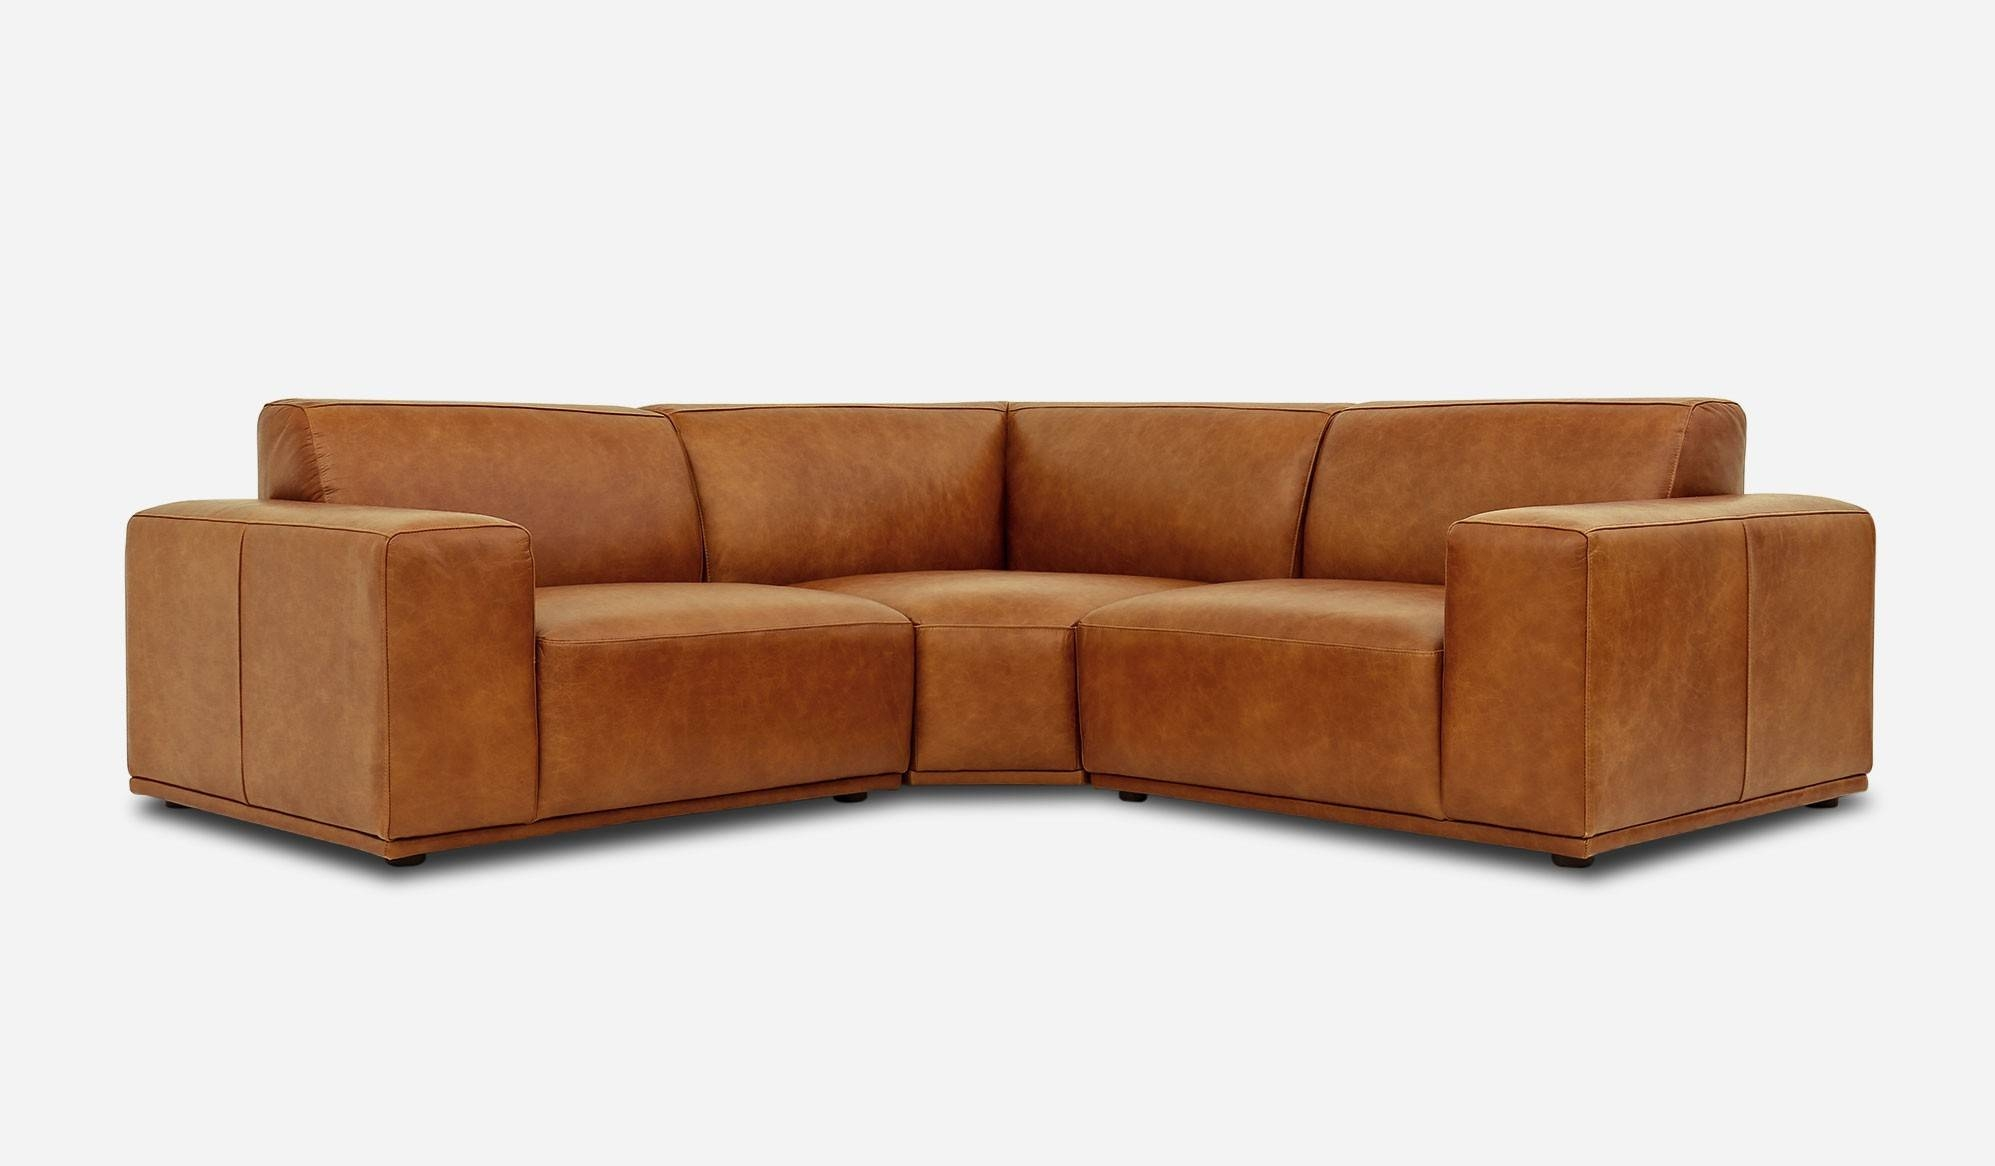 leather vs fabric sofa india buffalo check best of sectional camel sofas